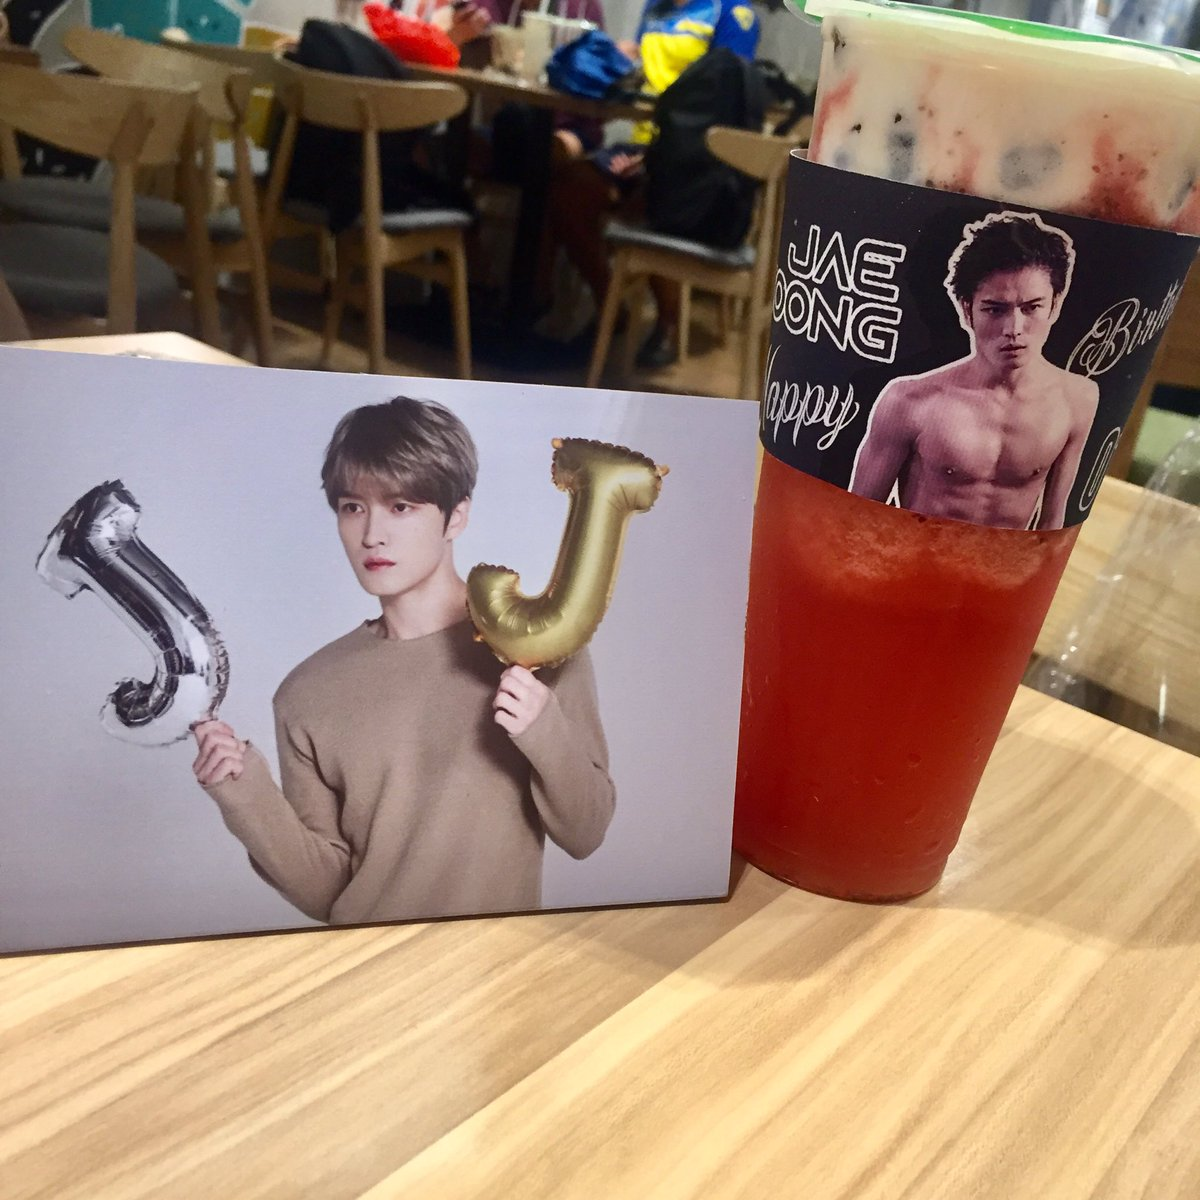 Now, I know what's the meaning of soft and hard stan  Also, thank you @cassph_cebu with the additional cupsleeve  ang bait nyo talaga always! Nakakainis na eh #김재중_생일축하한다_애요 #HAPPY_JAEJOONG_DAY #SUMMERINWINTERKJJ #ジェジュン #김재중 #JAEJOONGpic.twitter.com/CXPZbYx1kp